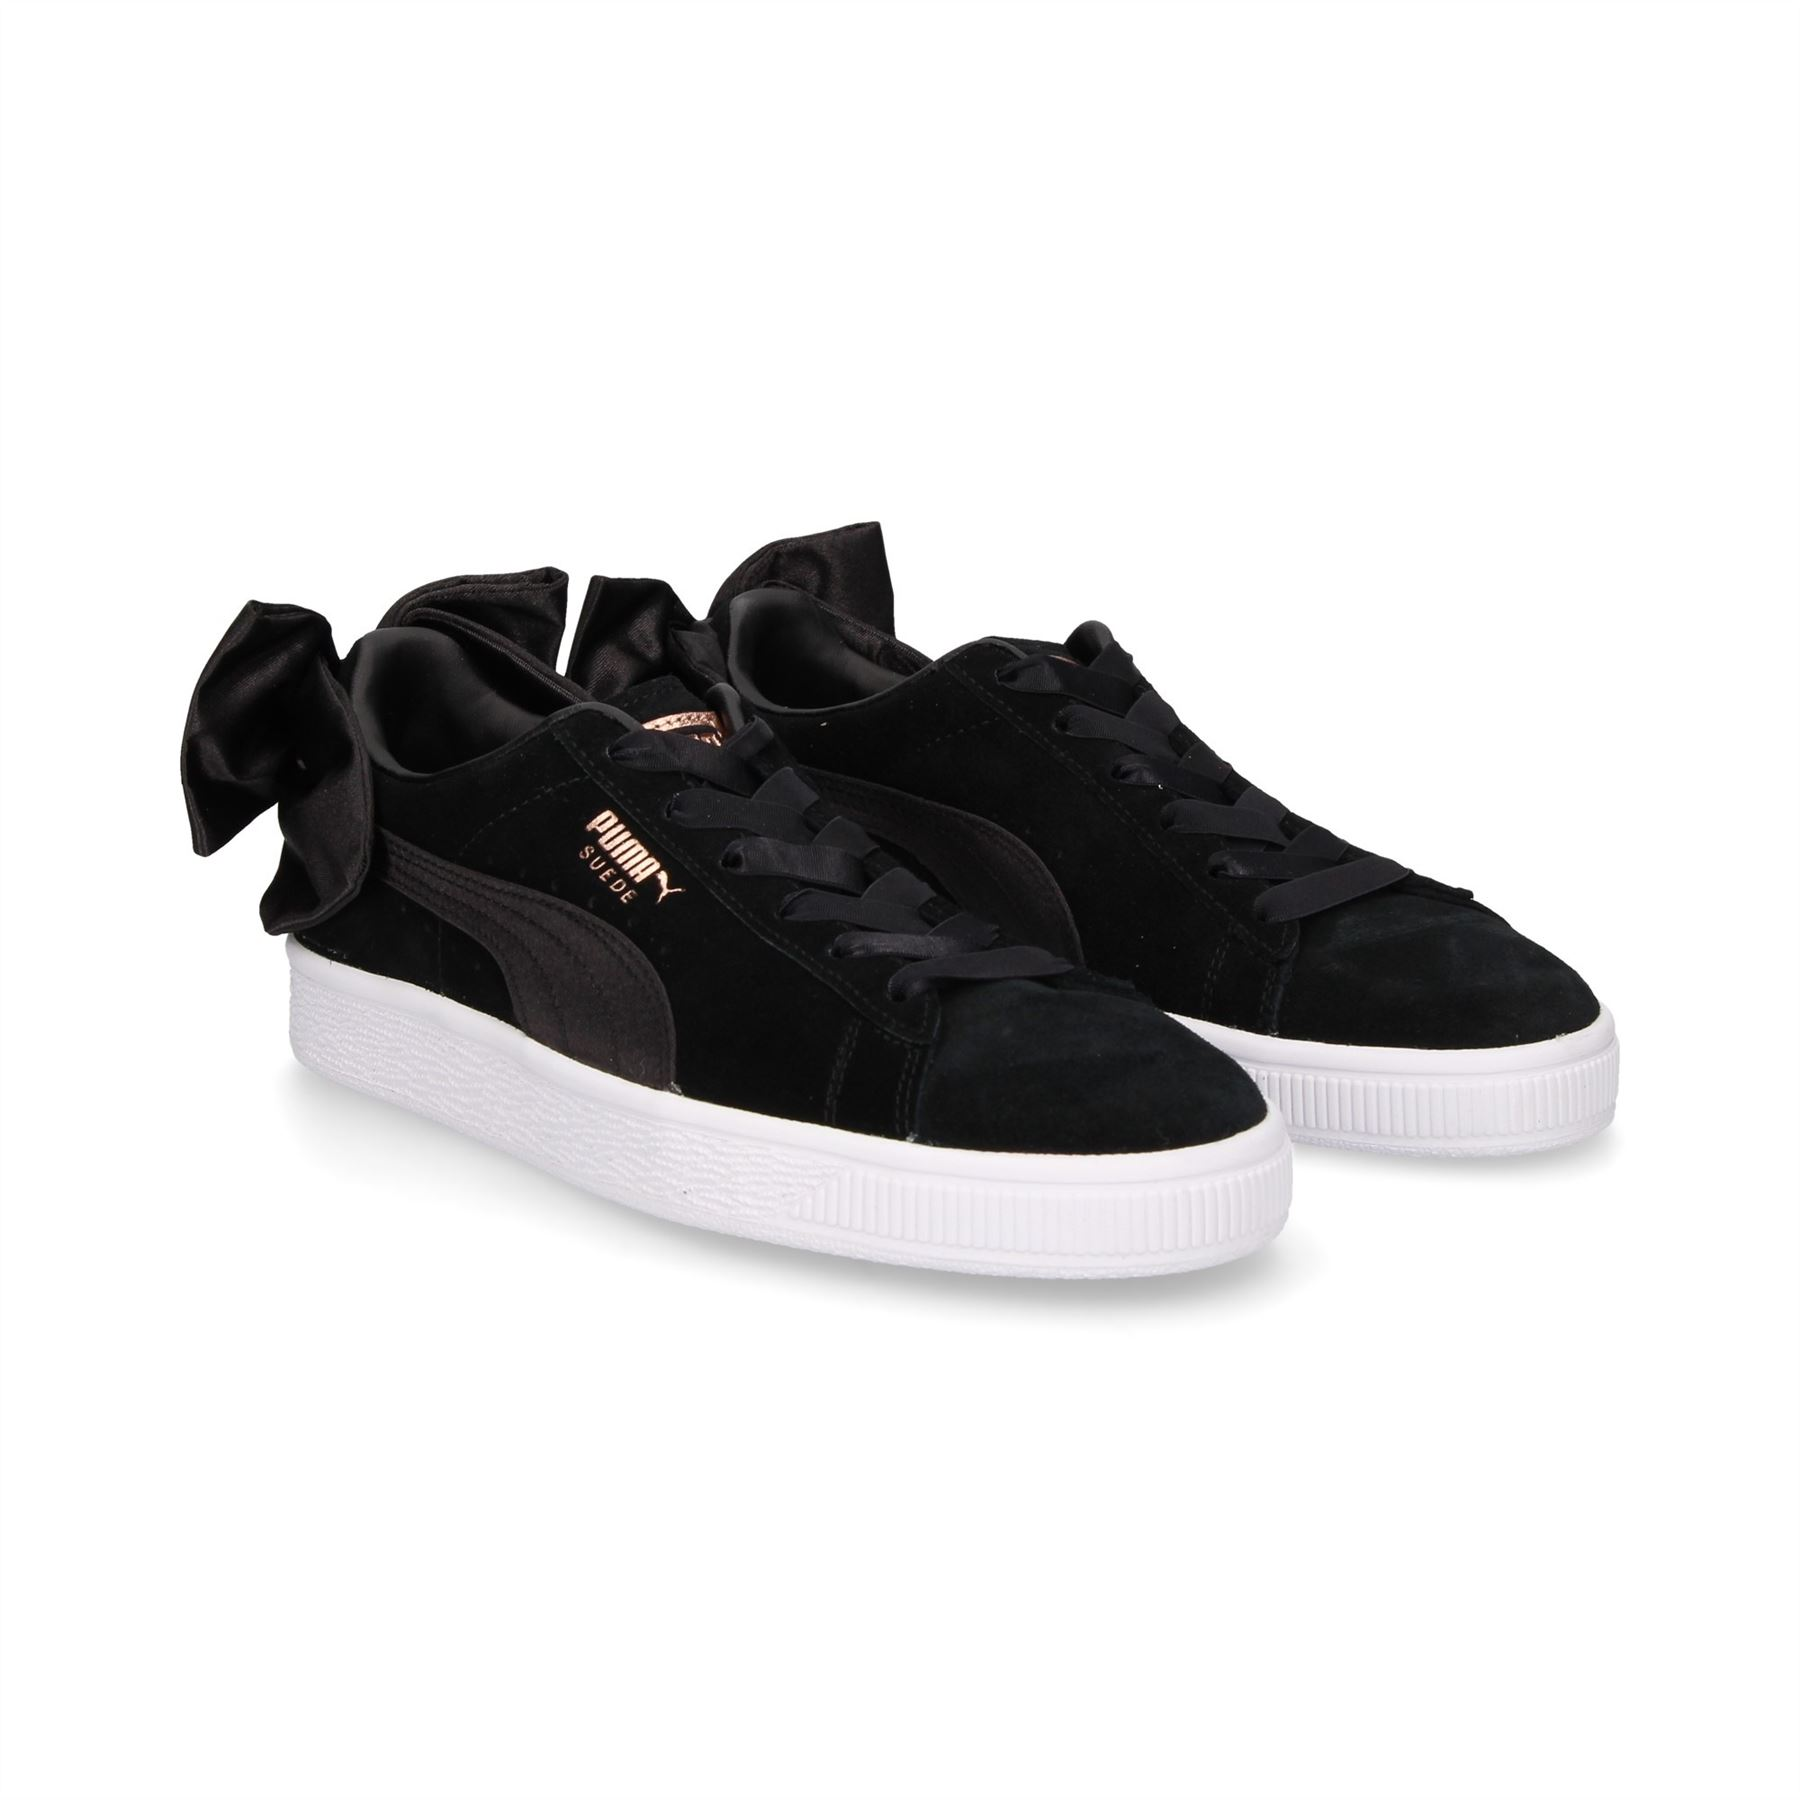 Puma-Suede-Bow-Womens-Trainers-RRP-70-Sizes-UK-3-to-7-5 miniatuur 3